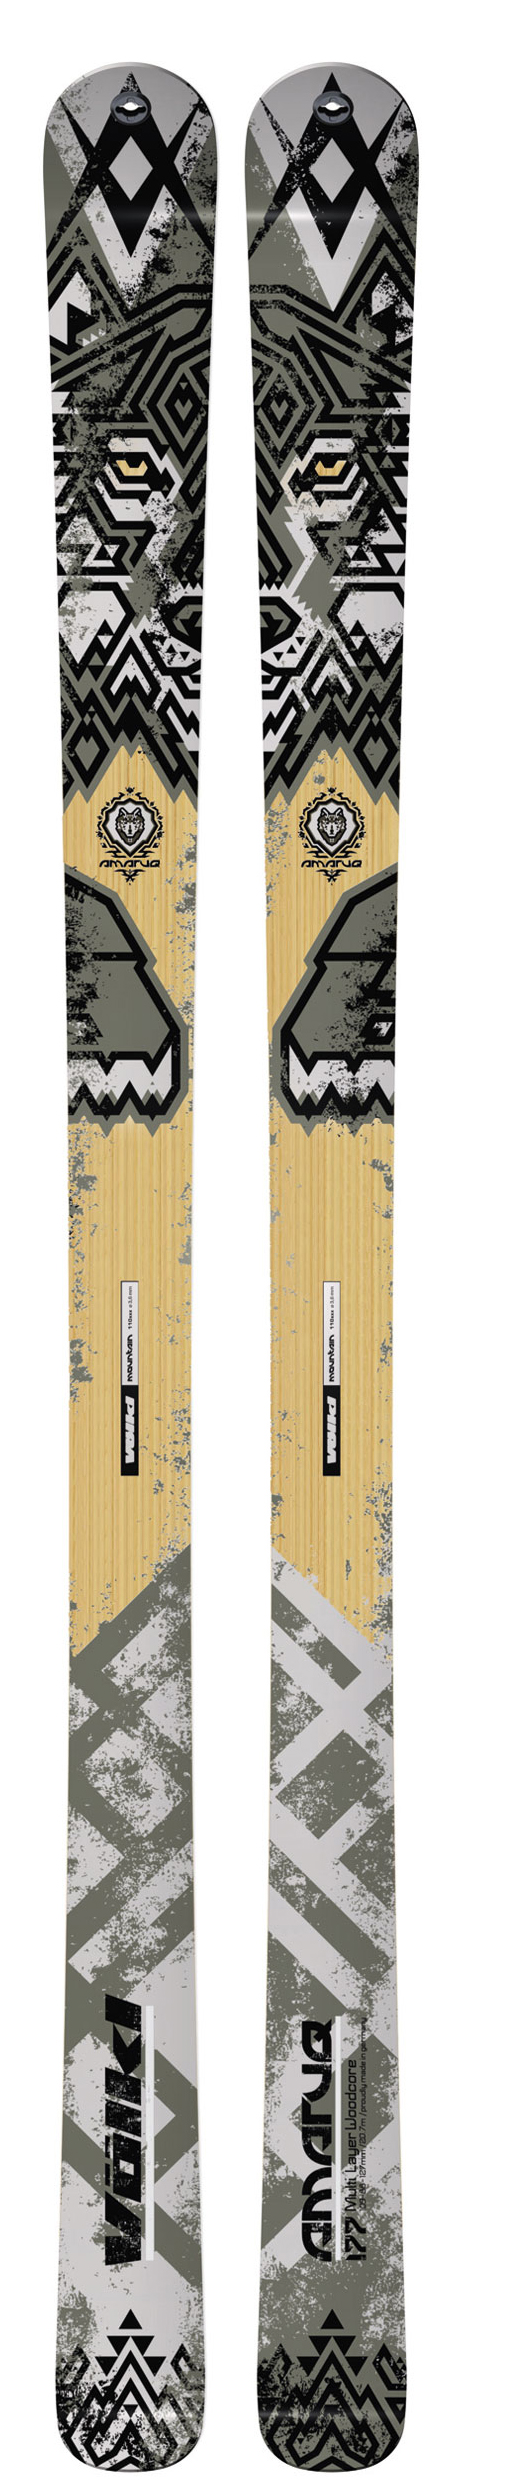 Ski A 2011 model for the backcountry, the Amaruq features a shape that is wide enough for most lift-served conditions, yet nimble enough for all day touring.Key Features of the Volkl Amaruq Flat Skis: Sidecut/ Radius: 127/ 88/ 109/ 18.0@163 - $387.95